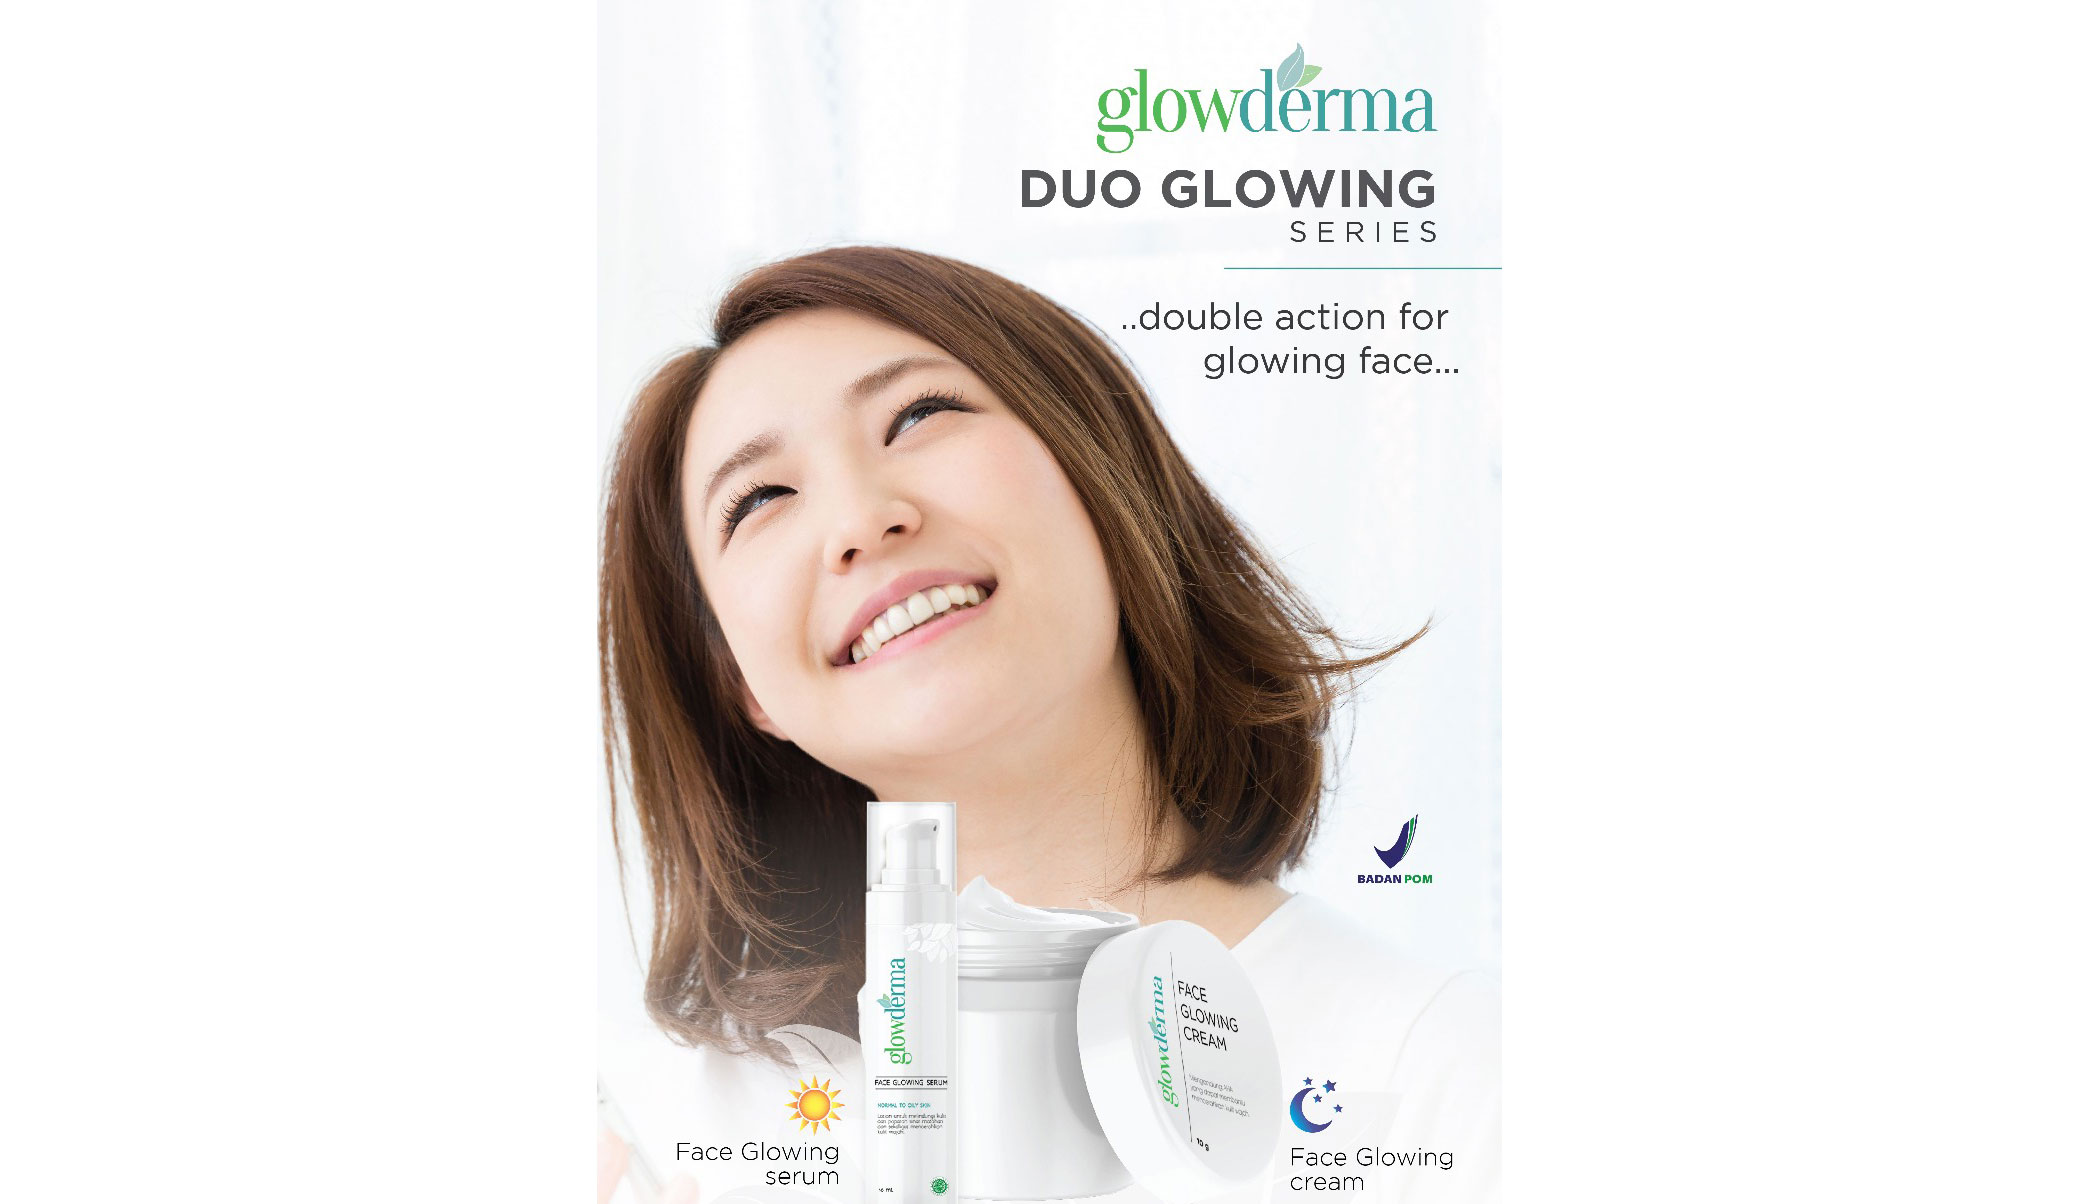 duo-glowing-series